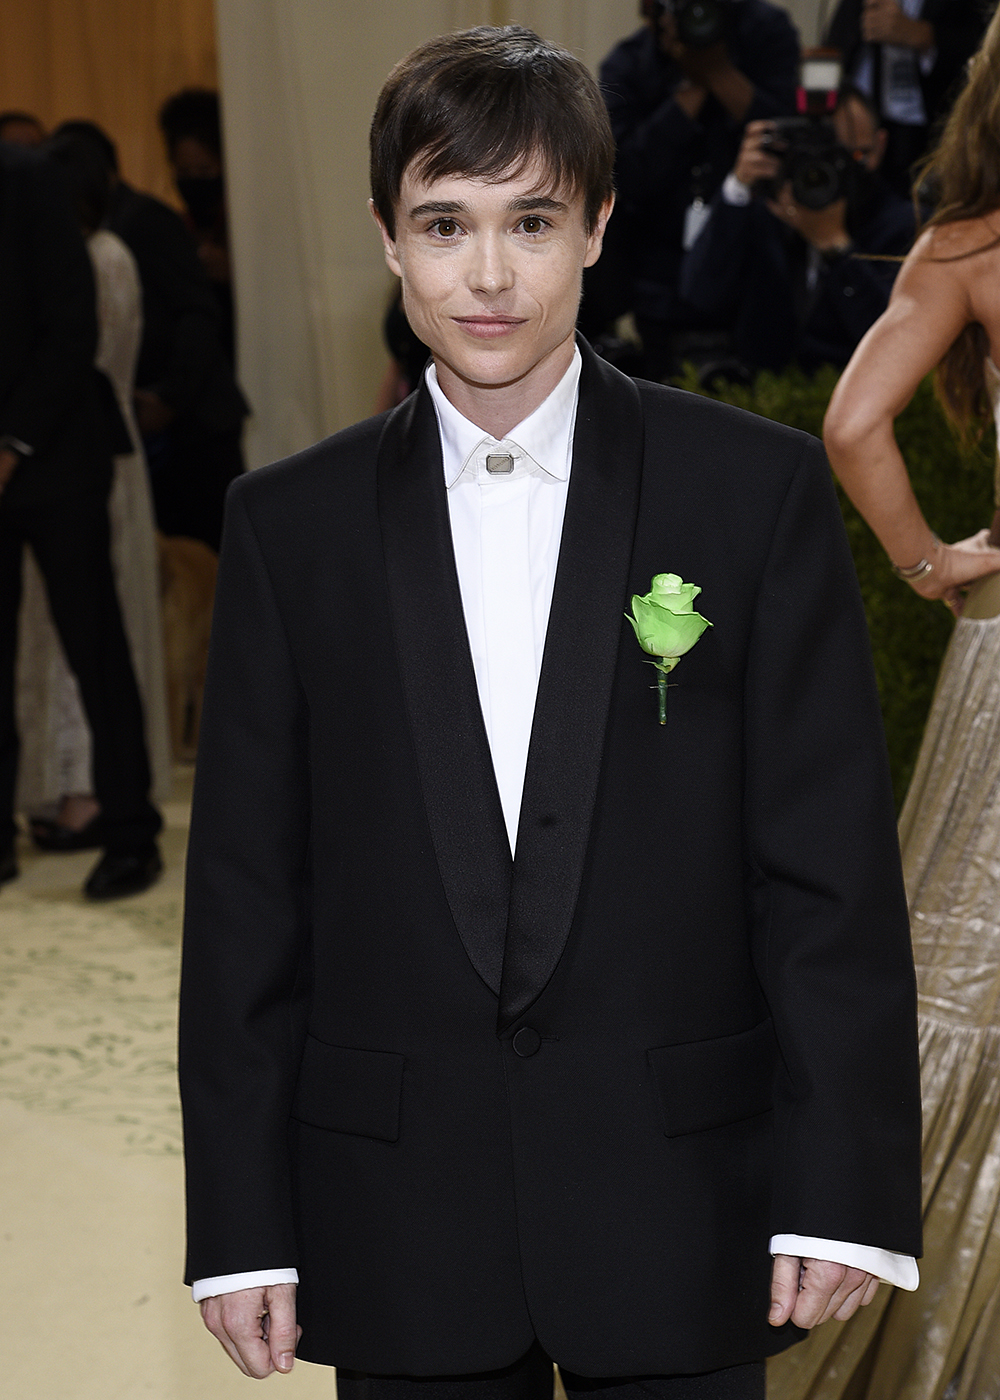 """Elliot Page attends The Metropolitan Museum of Art's Costume Institute benefit gala celebrating the opening of the """"In America: A Lexicon of Fashion"""" exhibition on Monday, Sept. 13, 2021, in New York. (Photo by Evan Agostini/Invision/AP)"""